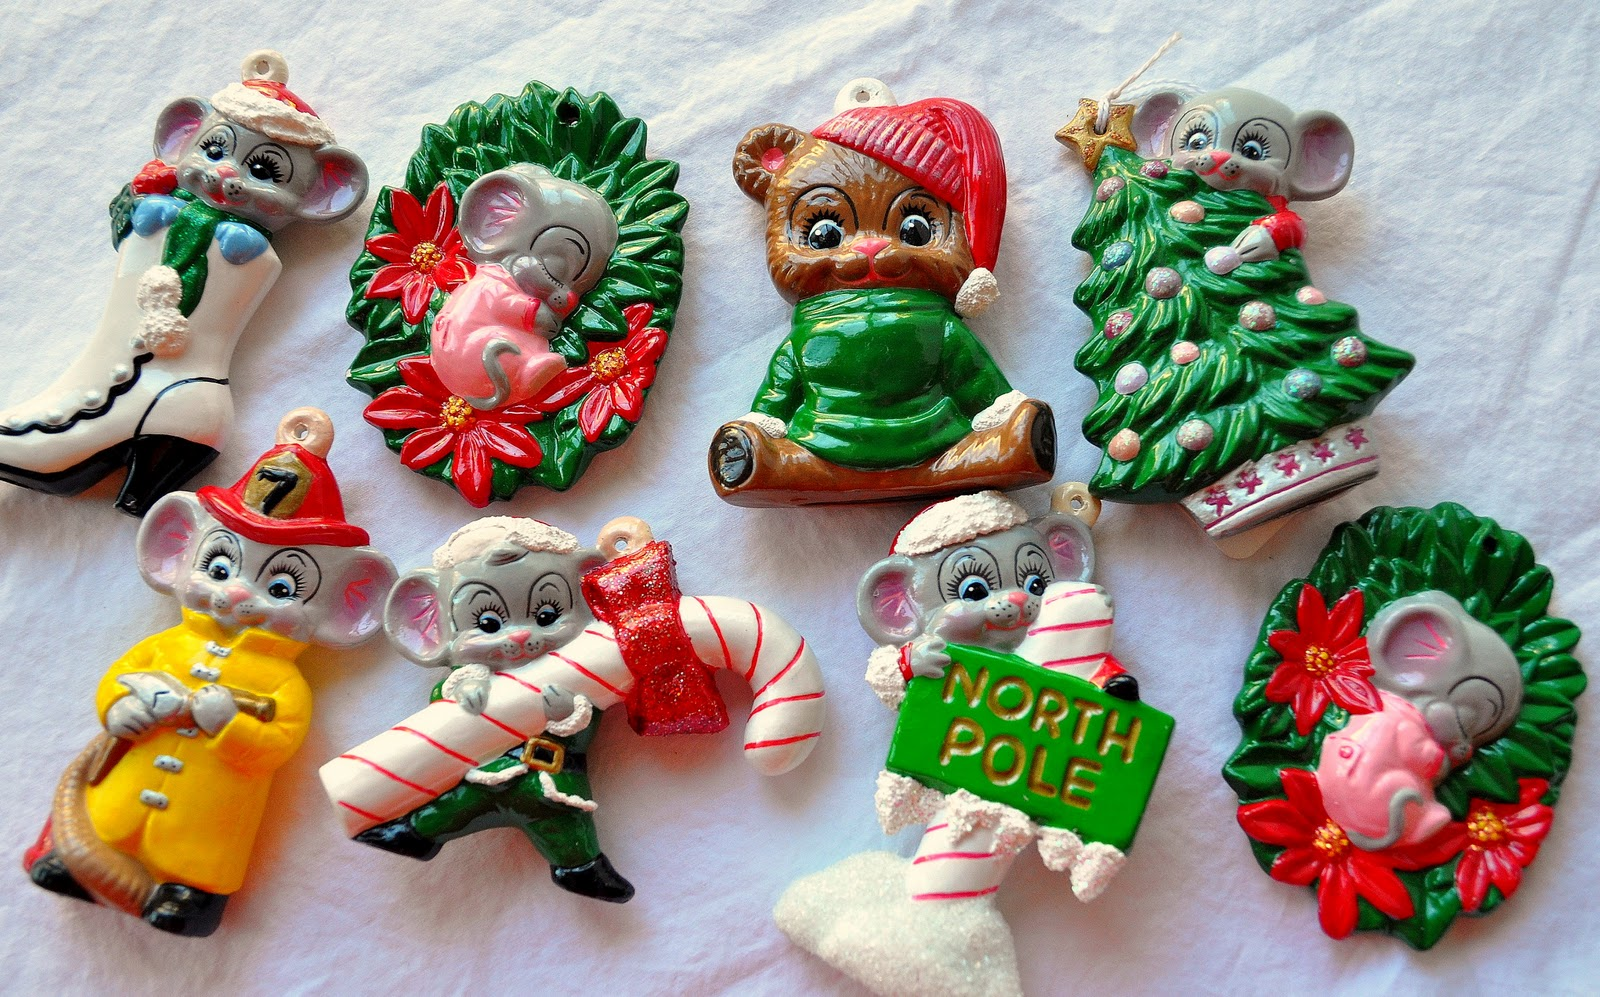 Home and Garden: Handpainted Christmas Ornaments | Lemons and Lavender